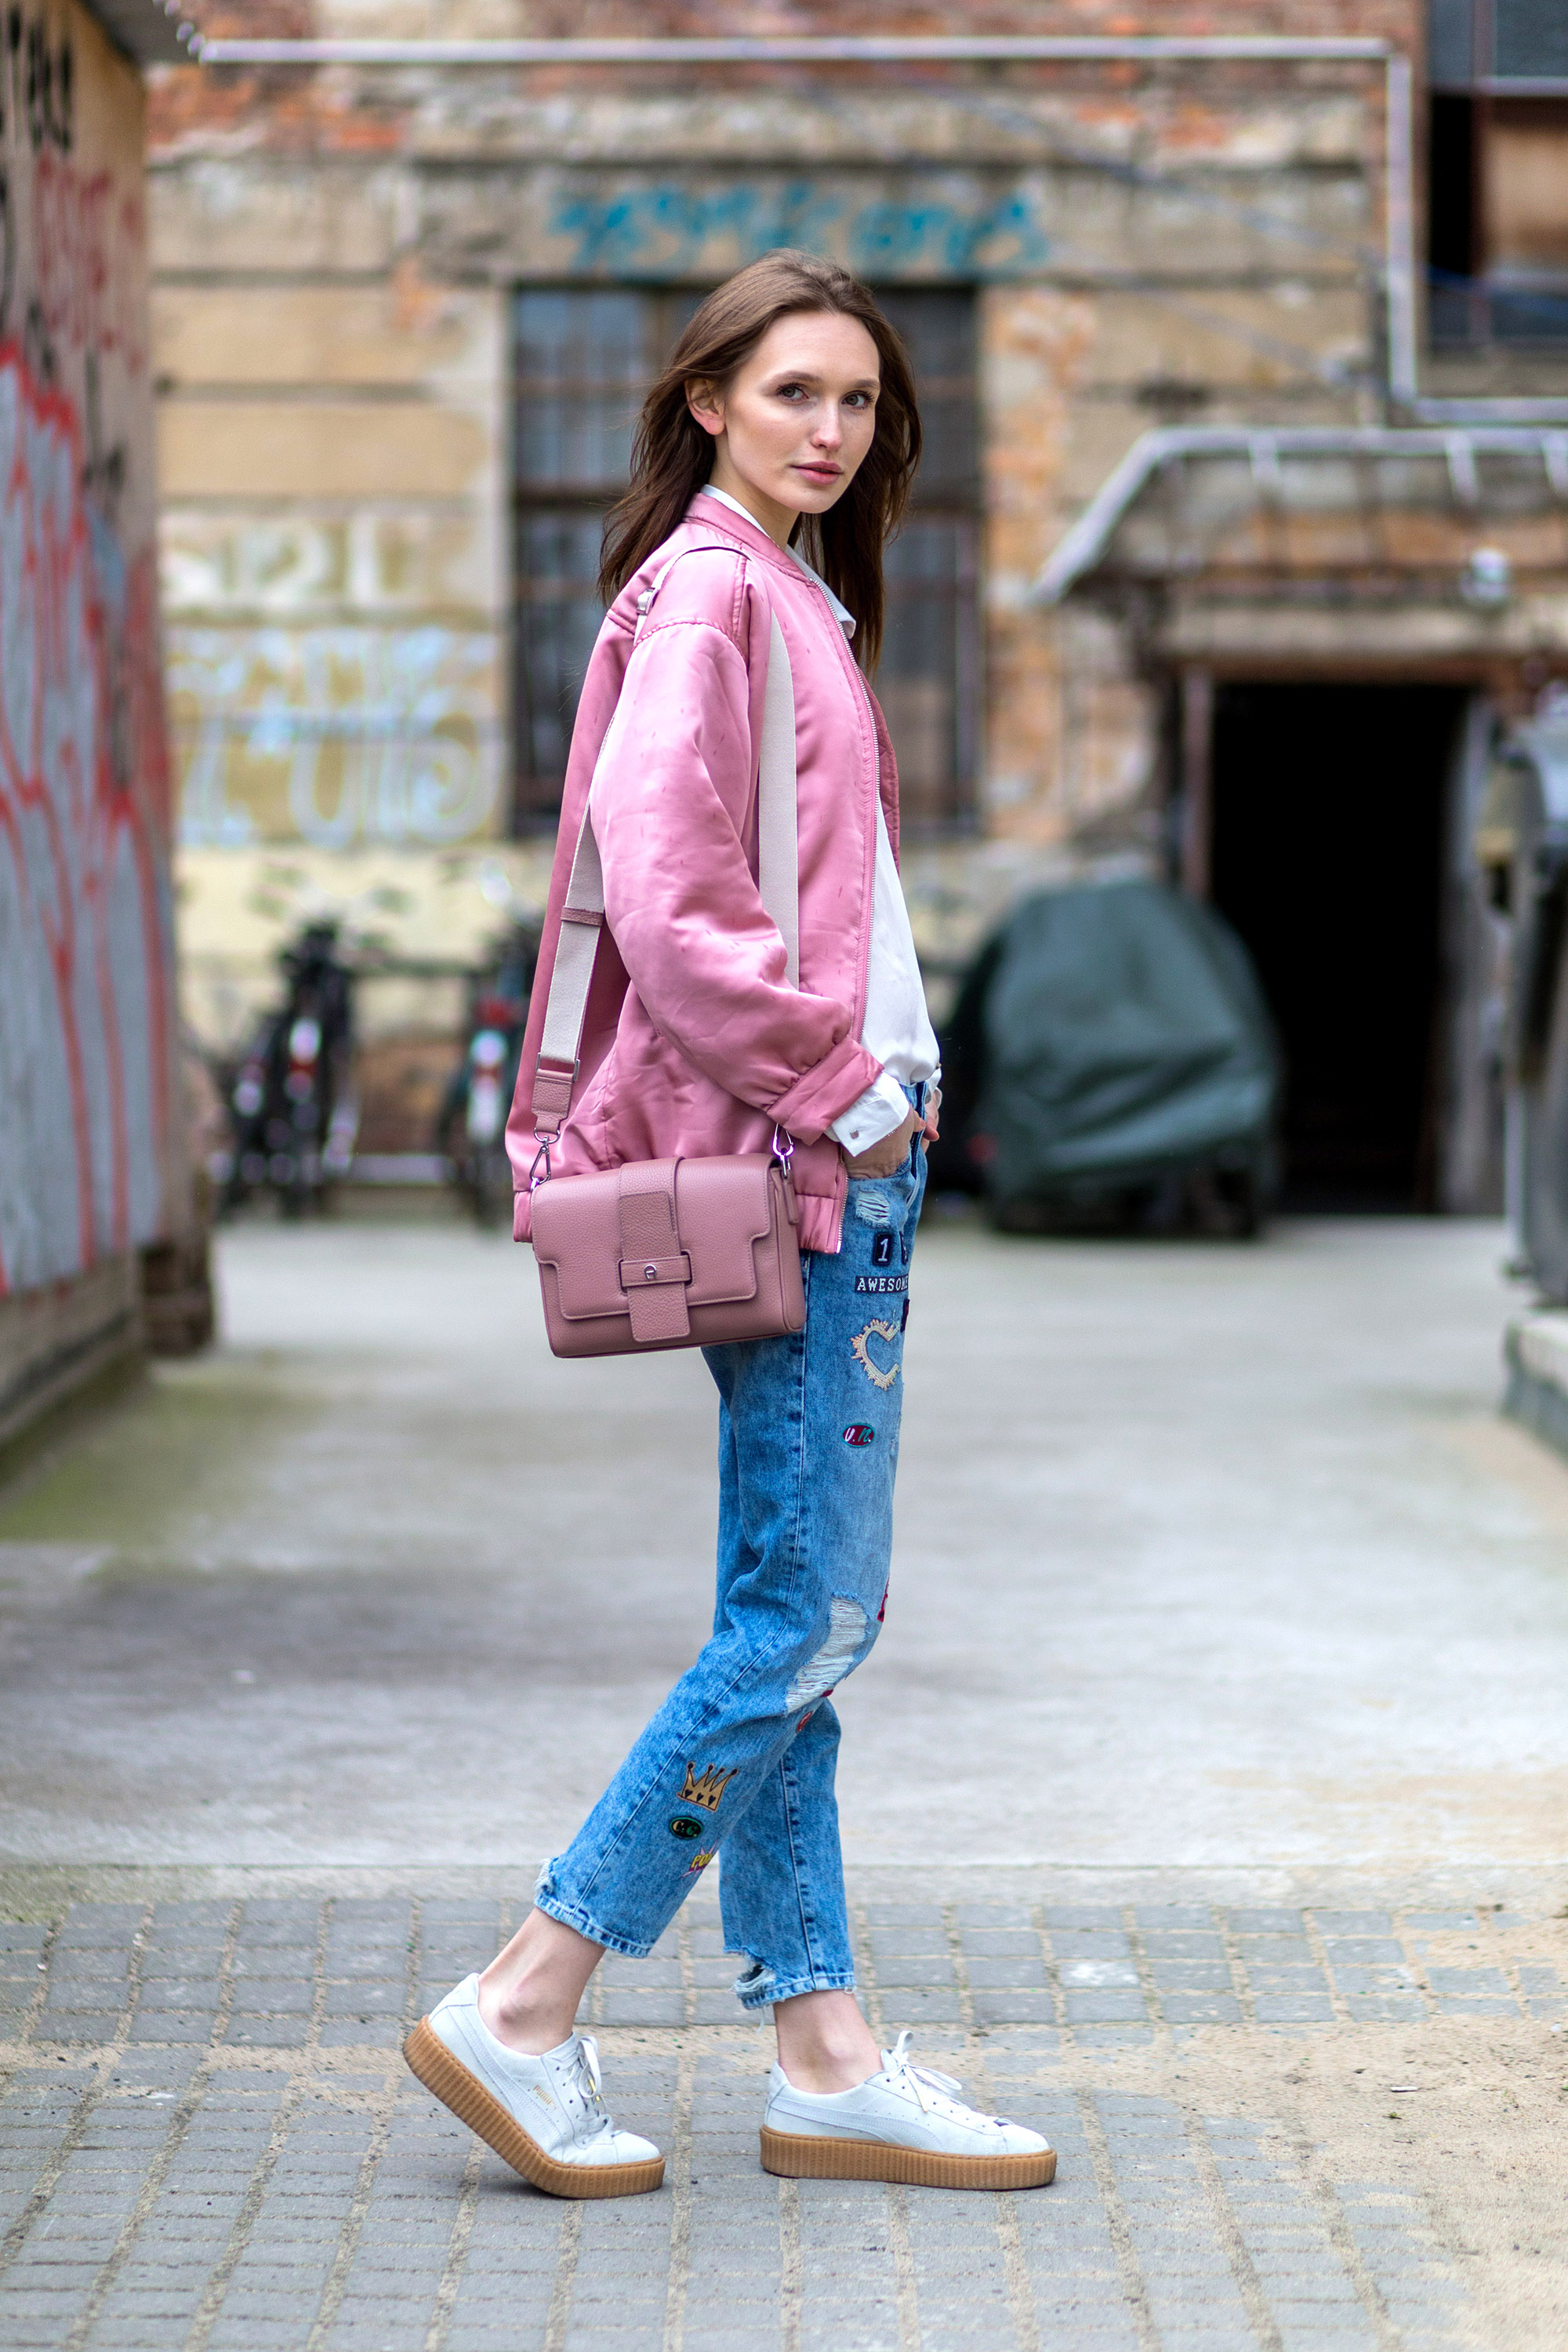 BERLIN, GERMANY - APRIL 8: Fashion model Anna Wilken is wearing a blue Zara denim jeans with patches, an oversized pink Mango bomber jacket, a pink Aigner Munich bag, white Puma creeper and a white Vero Moda blouse on April 8, 2016 in Berlin, Germany (Photo by Christian Vierig/Getty Images)